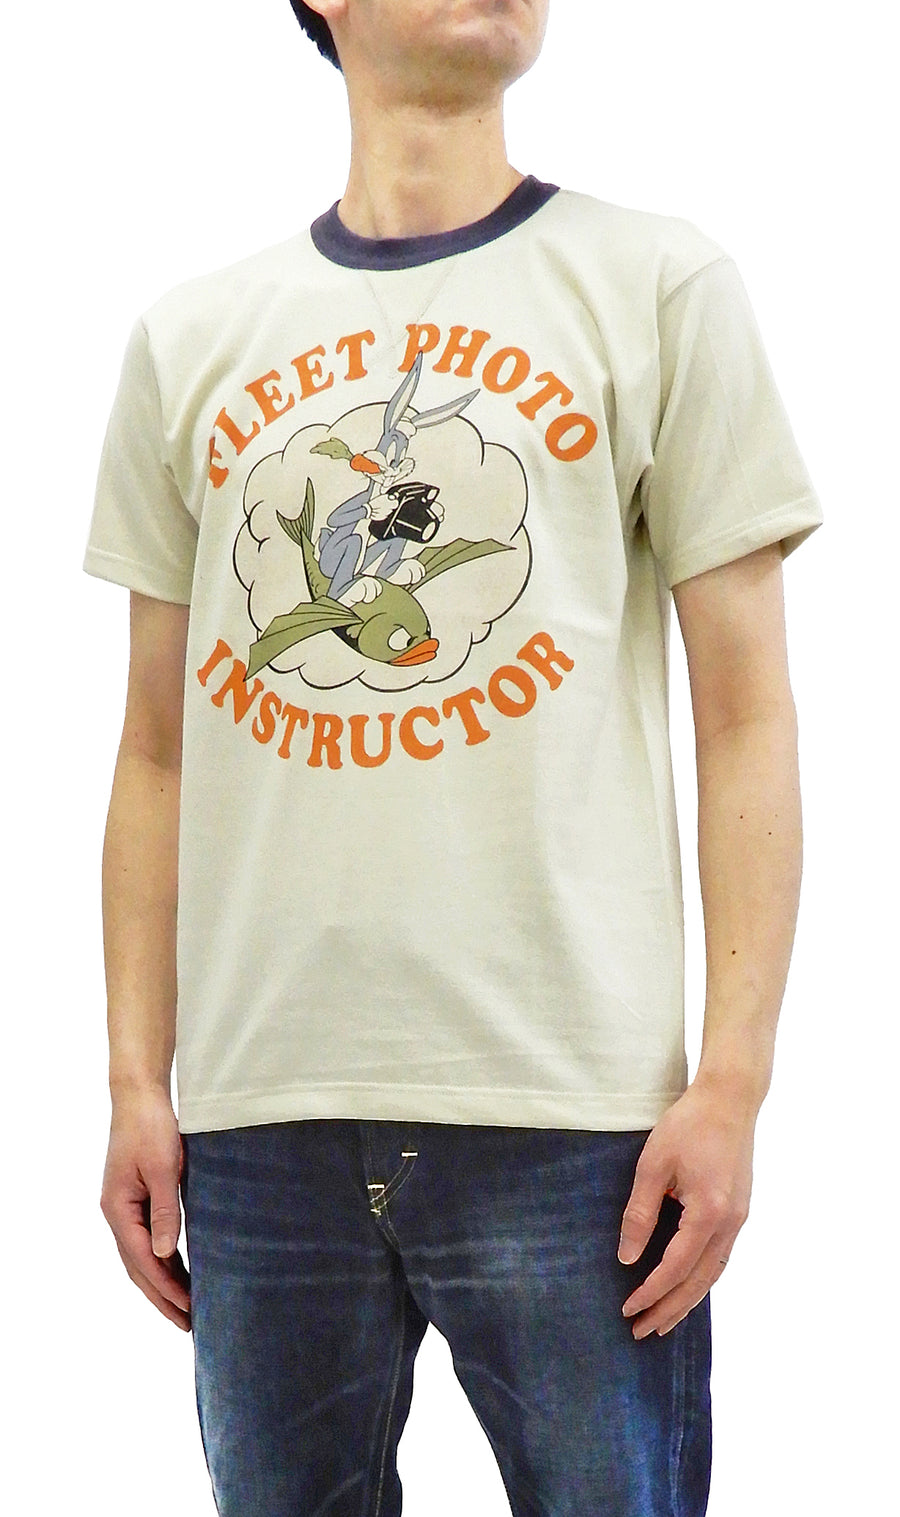 TOYS McCOY T-shirt Men's Bugs Bunny Military Short Sleeve Tee TMC2017 Ivory